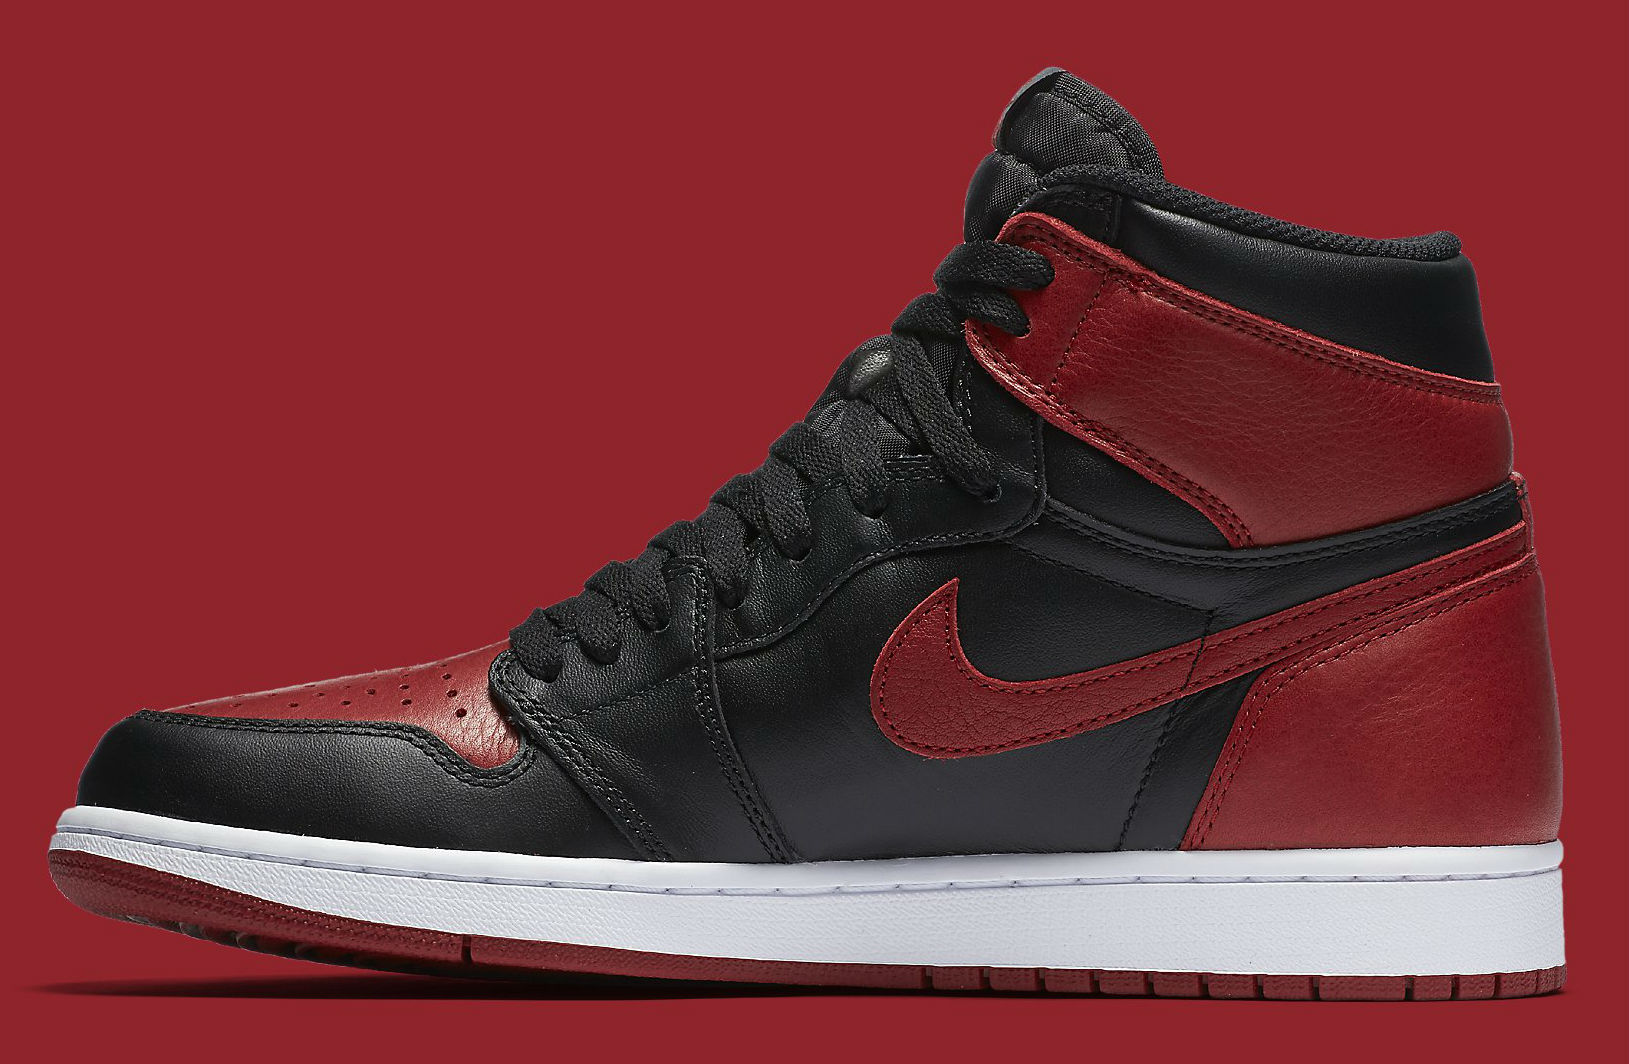 new product e6dae 40b27 Air Jordan 1 Banned 555088-001 | Sole Collector